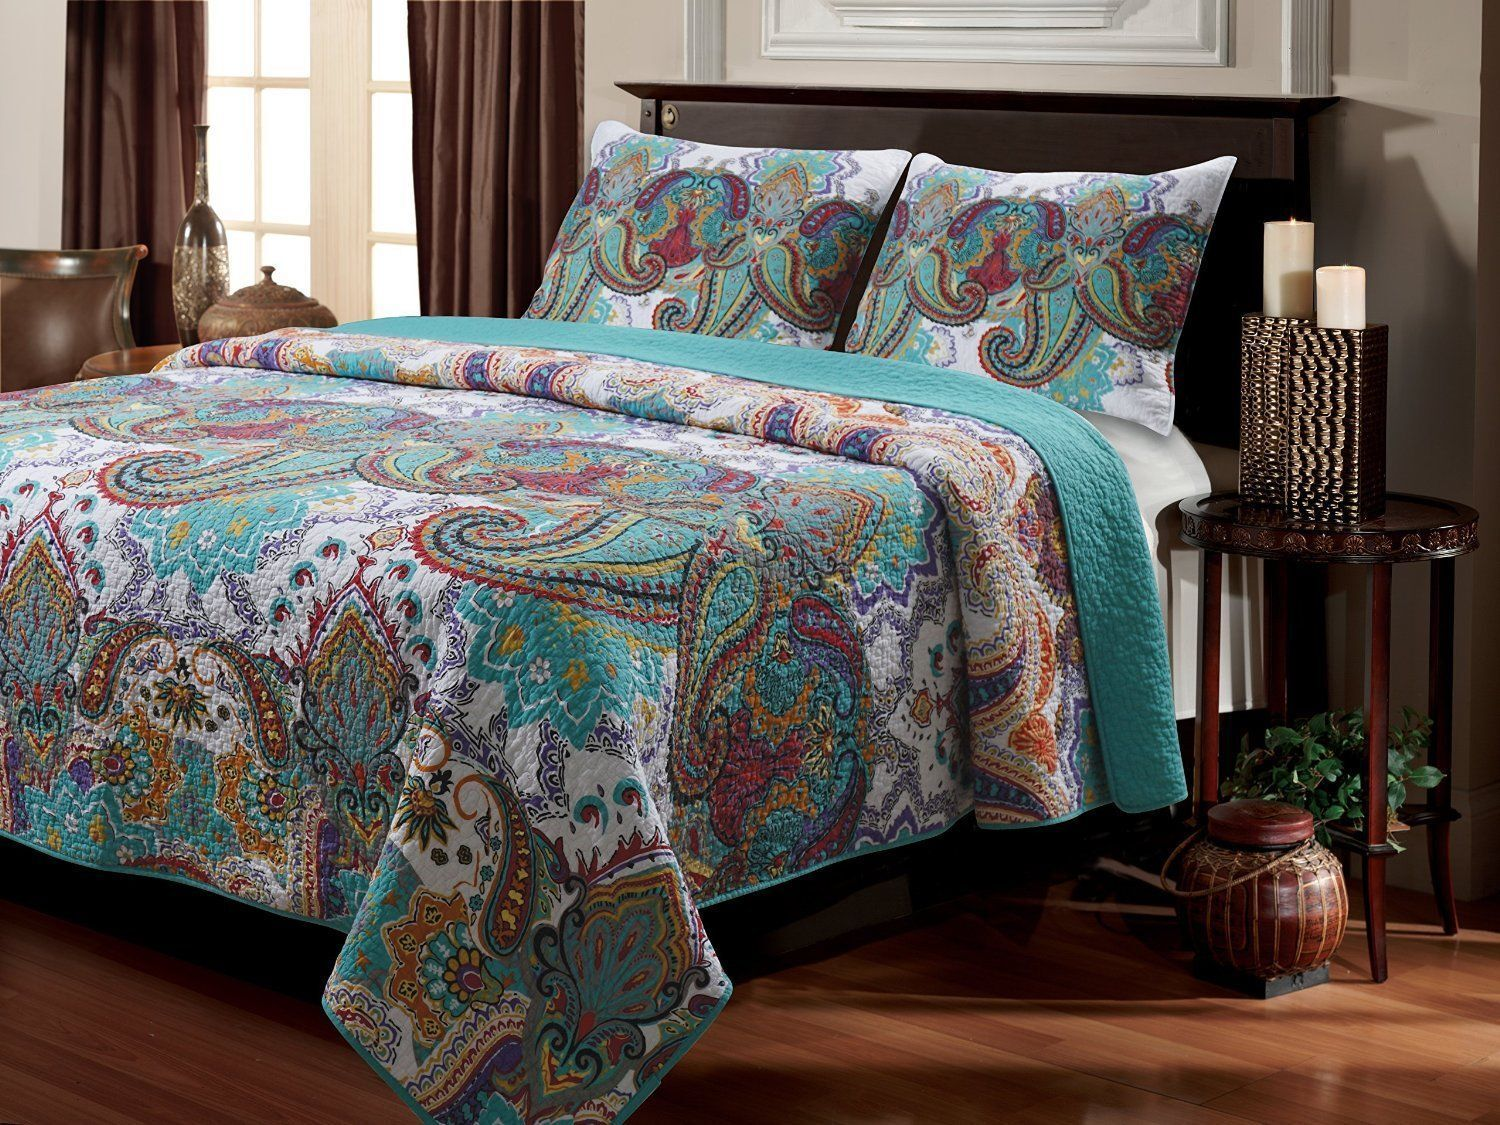 BEAUTIFUL REVERSIBLE COTTON Blau TEAL  rot GLOBAL MGoldCCAN TURQUOISE QUILT SET